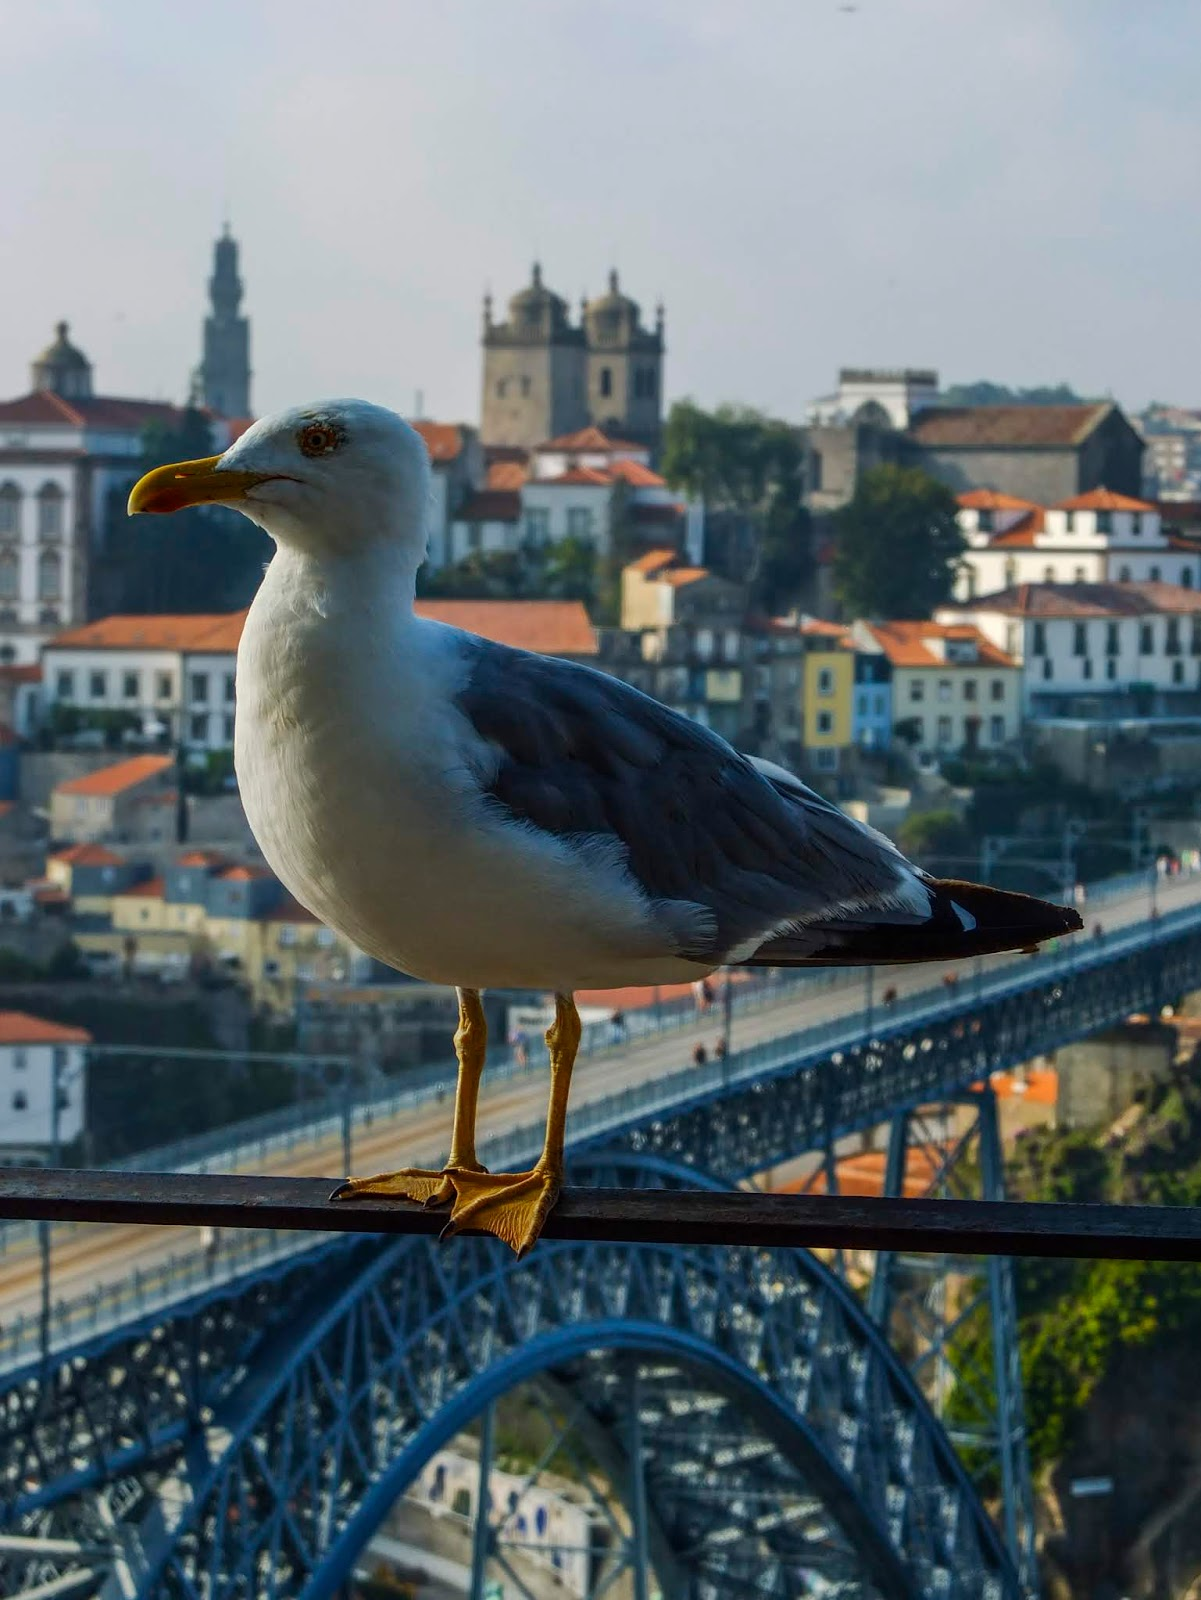 A seagull standing on a rail with a view of the Dom Luis I bridge in Porto, Portugal.